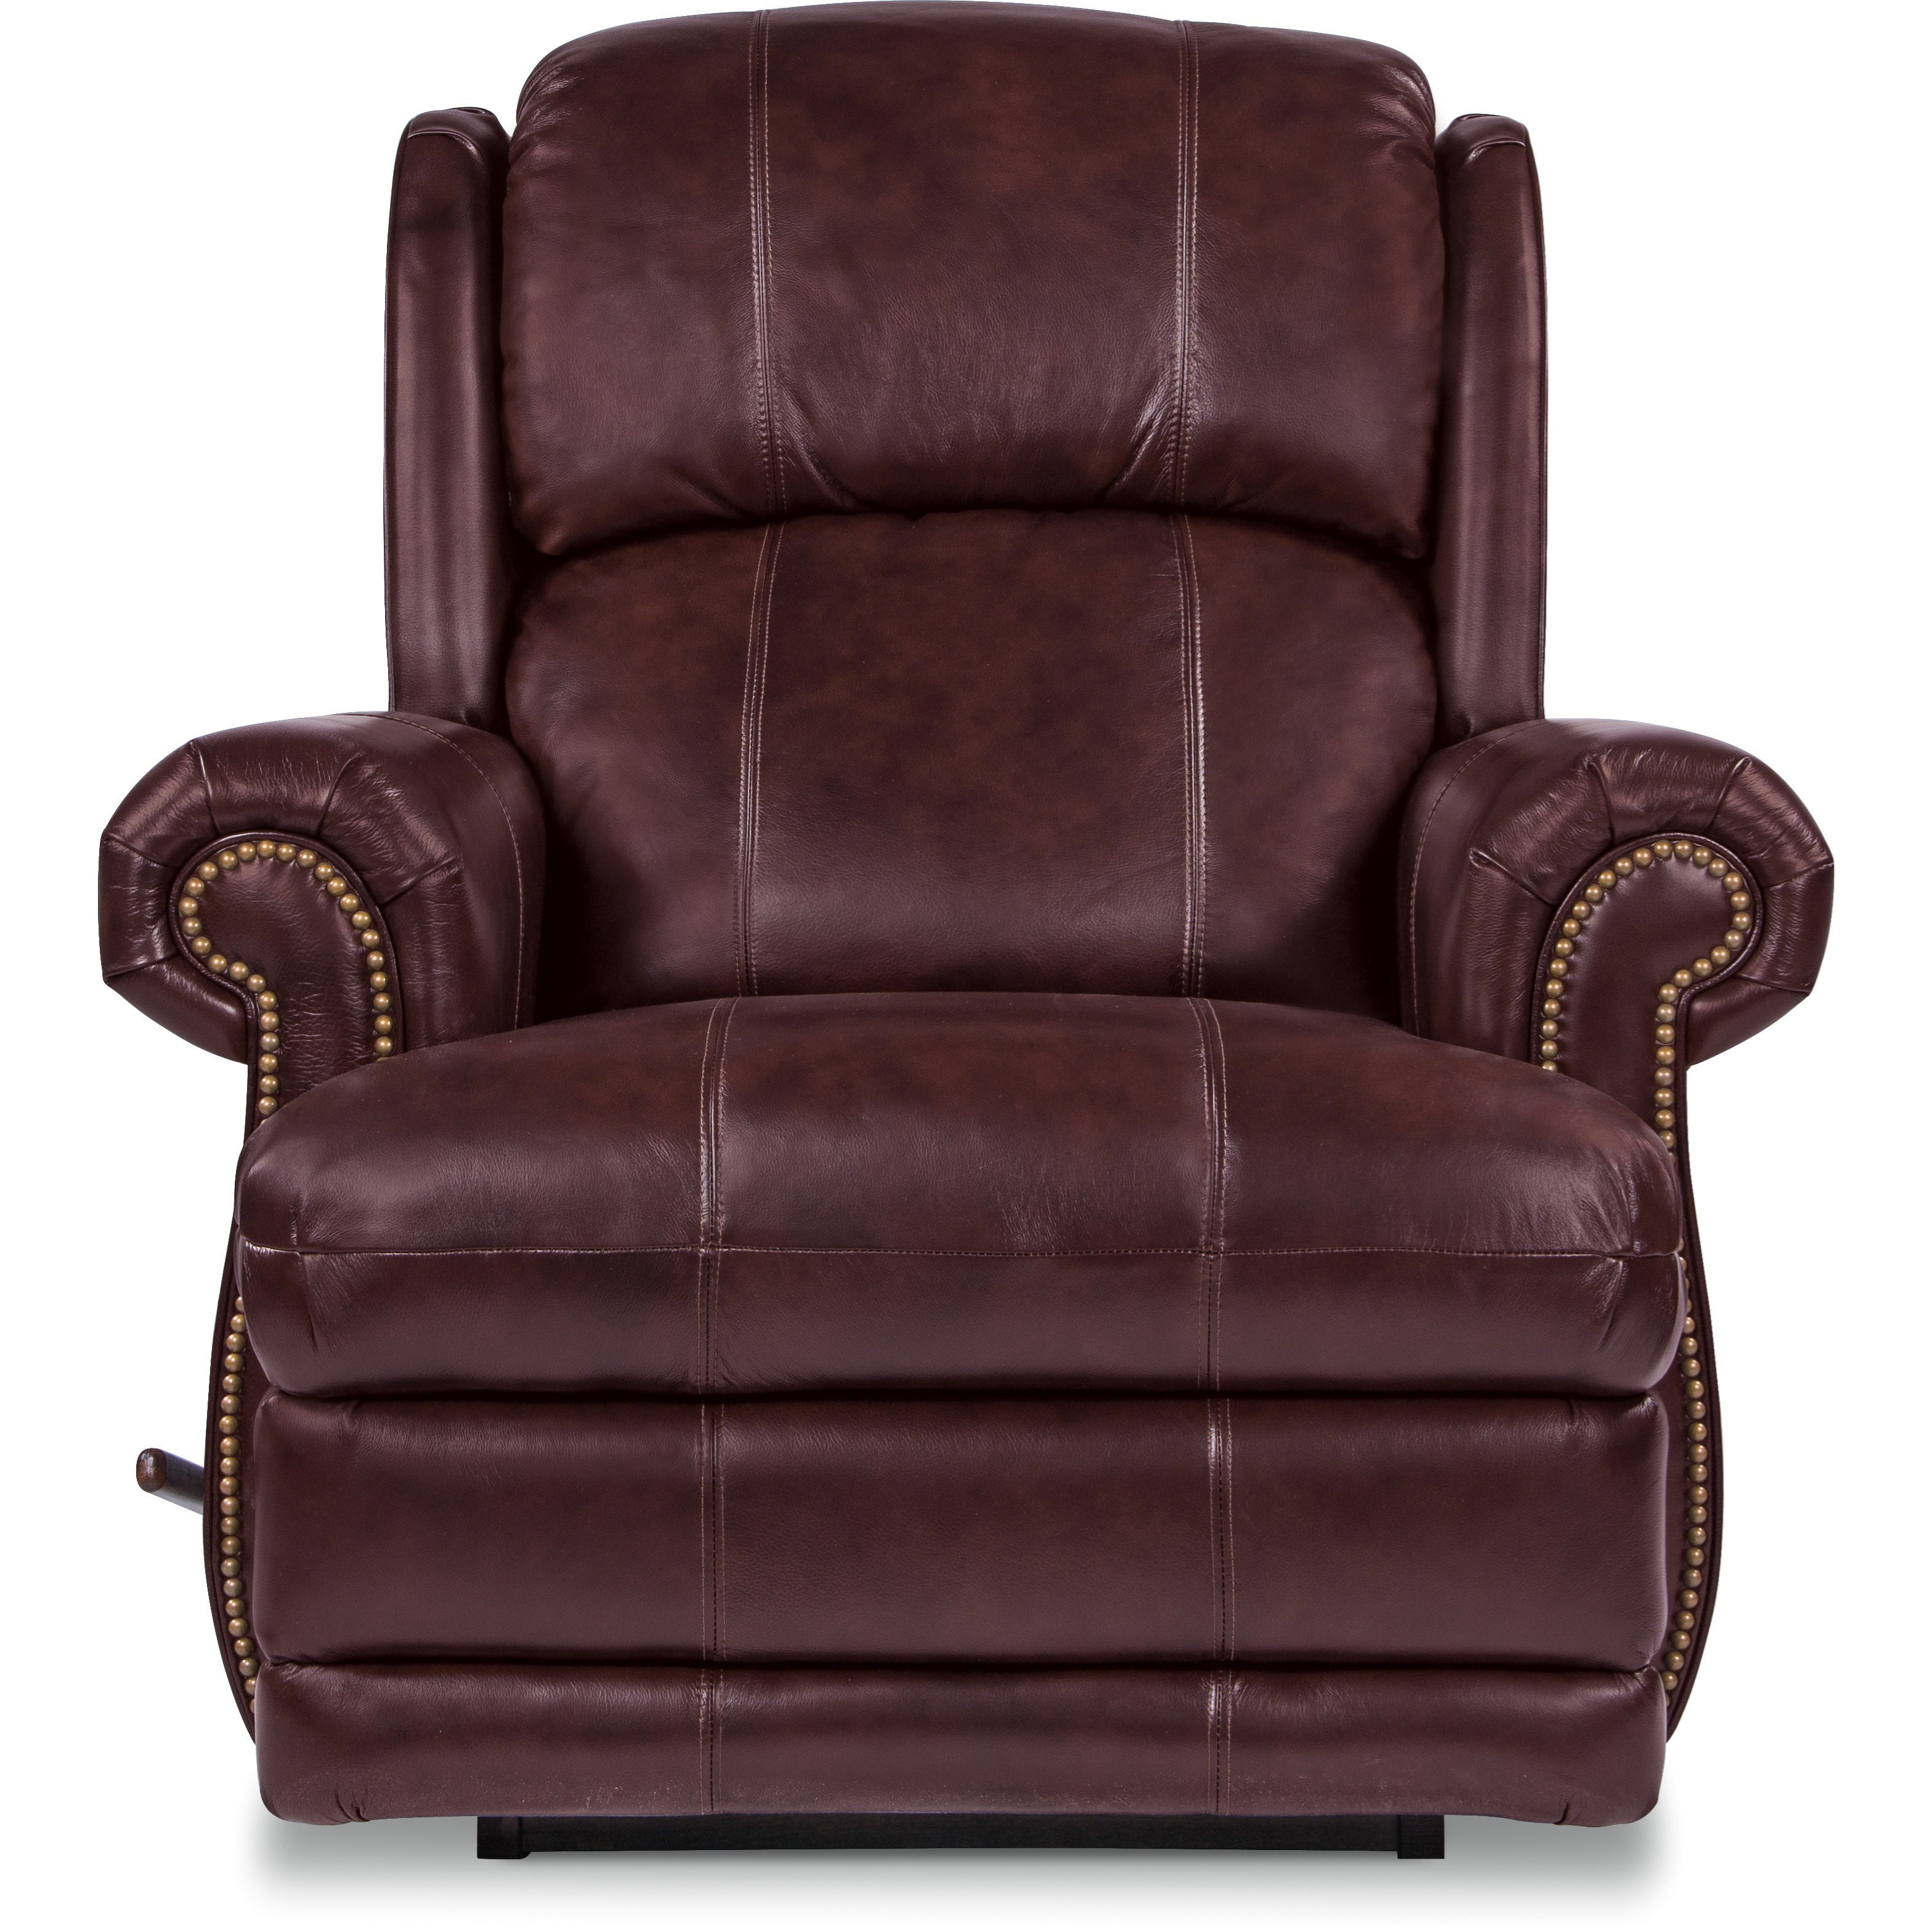 Kirkwood Rocking Recliner by La-Z-Boy at Jordan's Home Furnishings